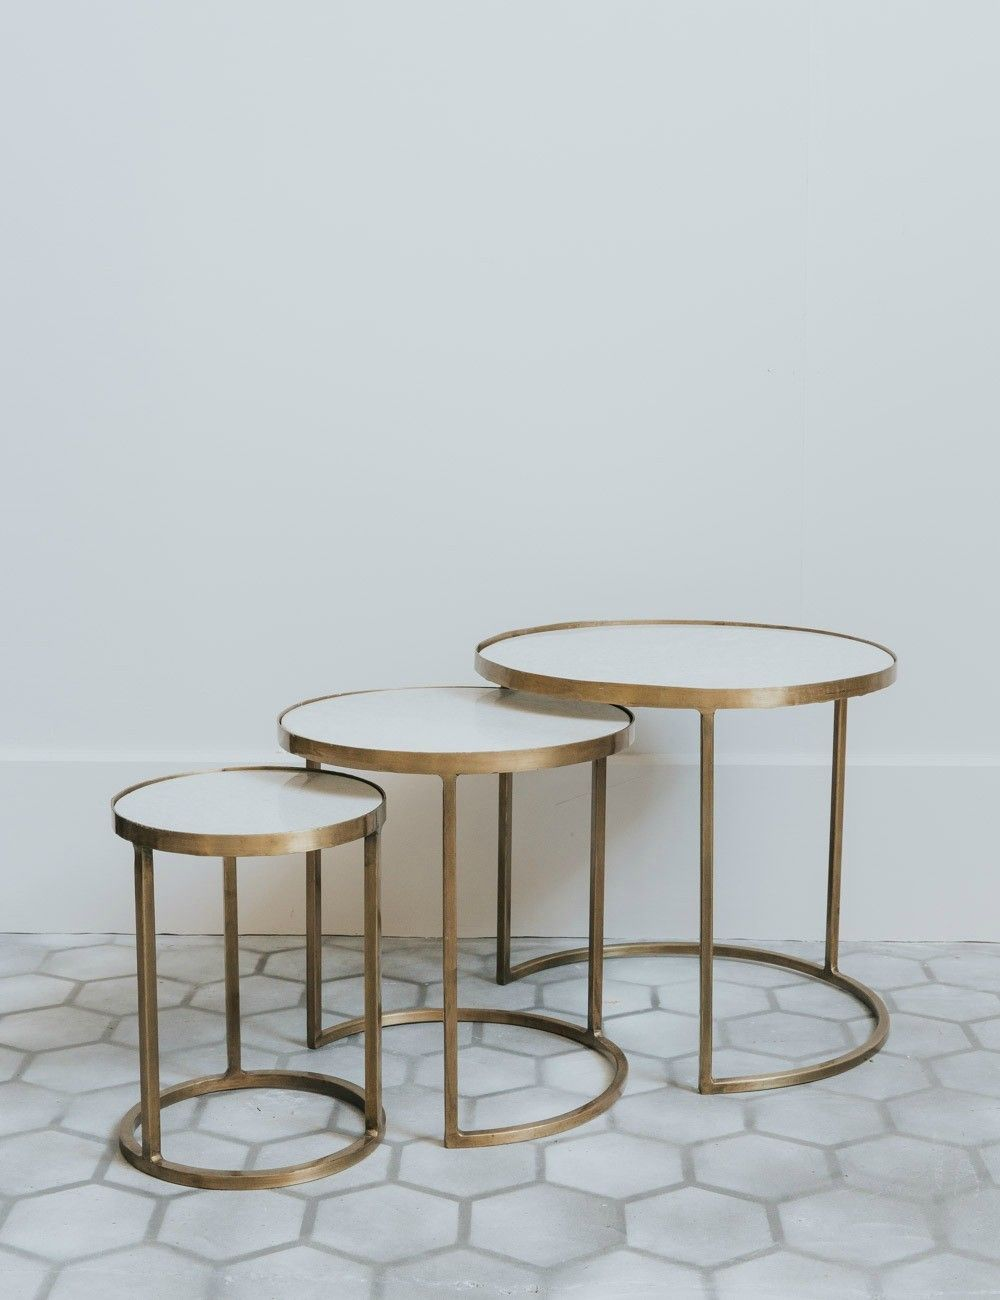 Bebe white marble brass nesting coffee tables white marble bebe white marble brass nesting coffee tables watchthetrailerfo